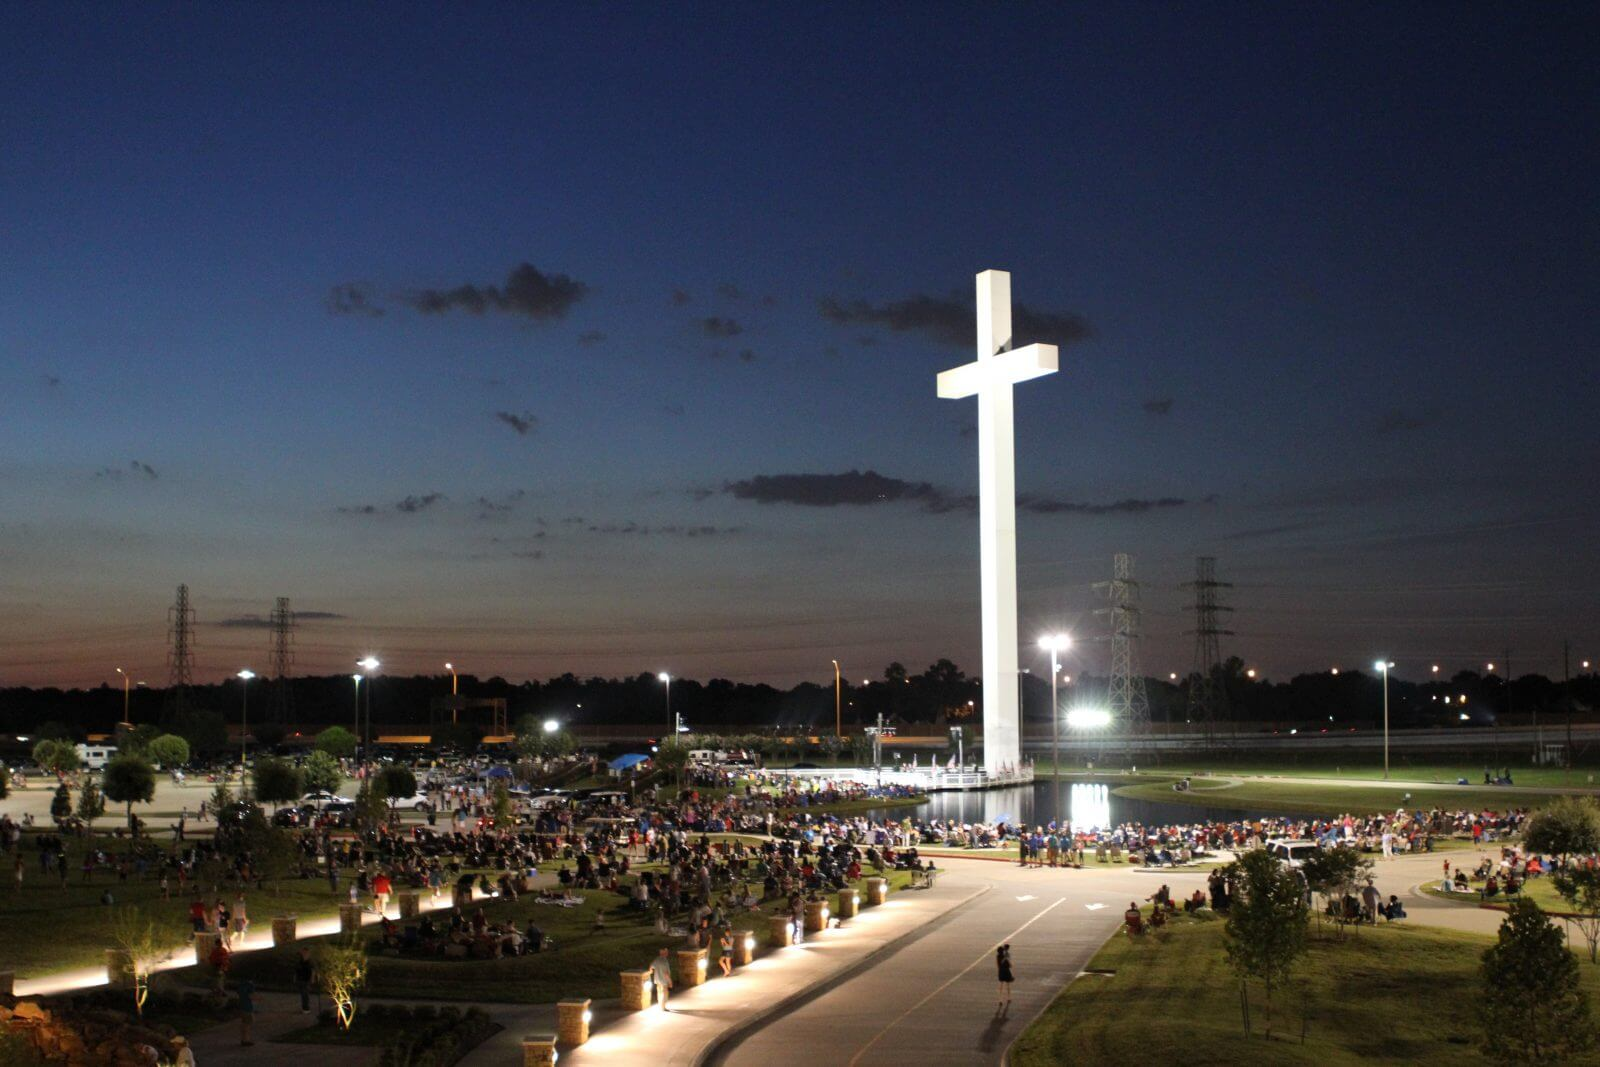 The 170-foot Sagemont Church Cross in Houston, Texas inspired Pastor Milby to build the Corpus Christi Cross. (Photo credit: Sagemont Church. May be republished.)